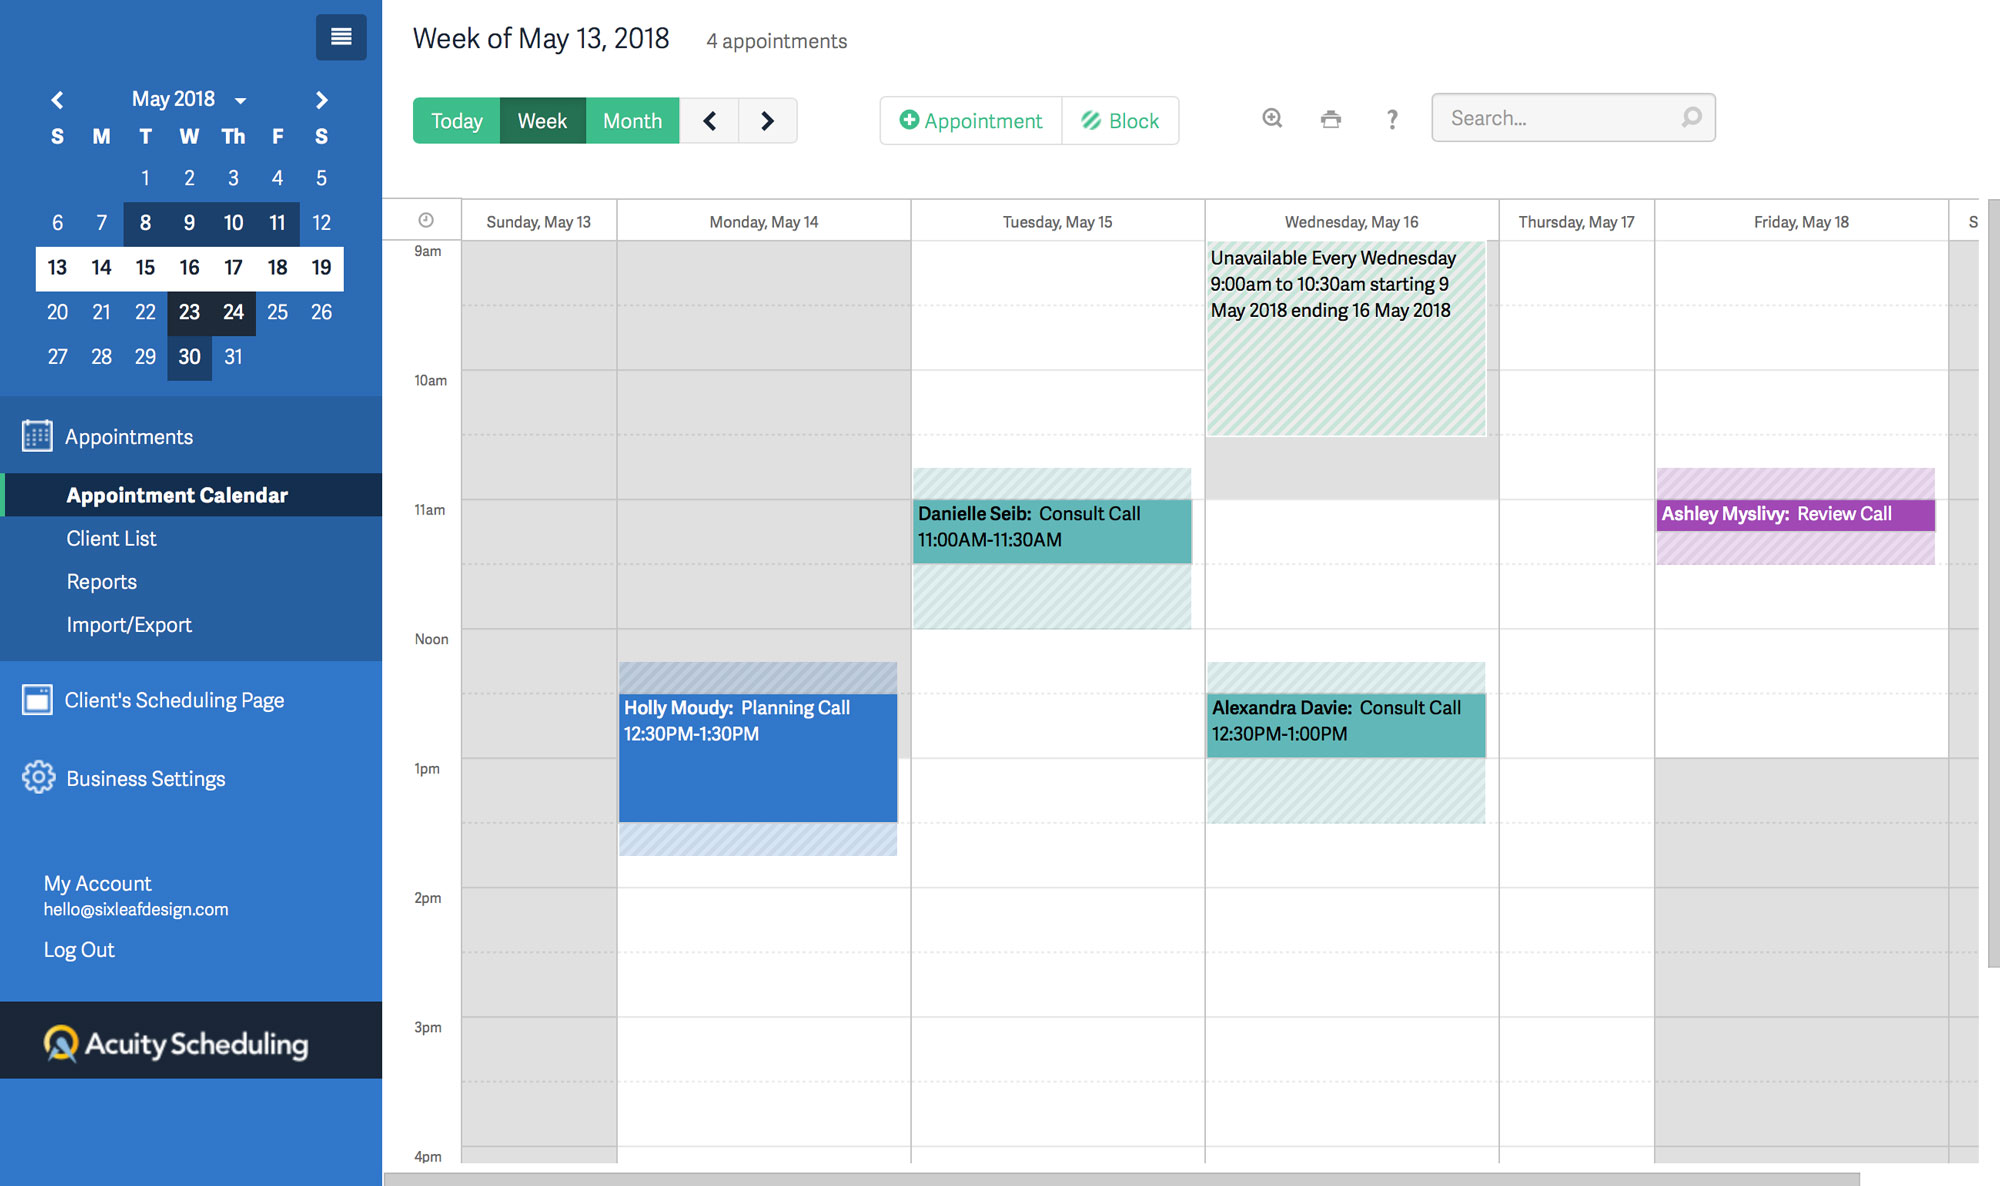 Acuity Scheduling | 3 More Tools I Use Everyday To Run My Business Smoothly